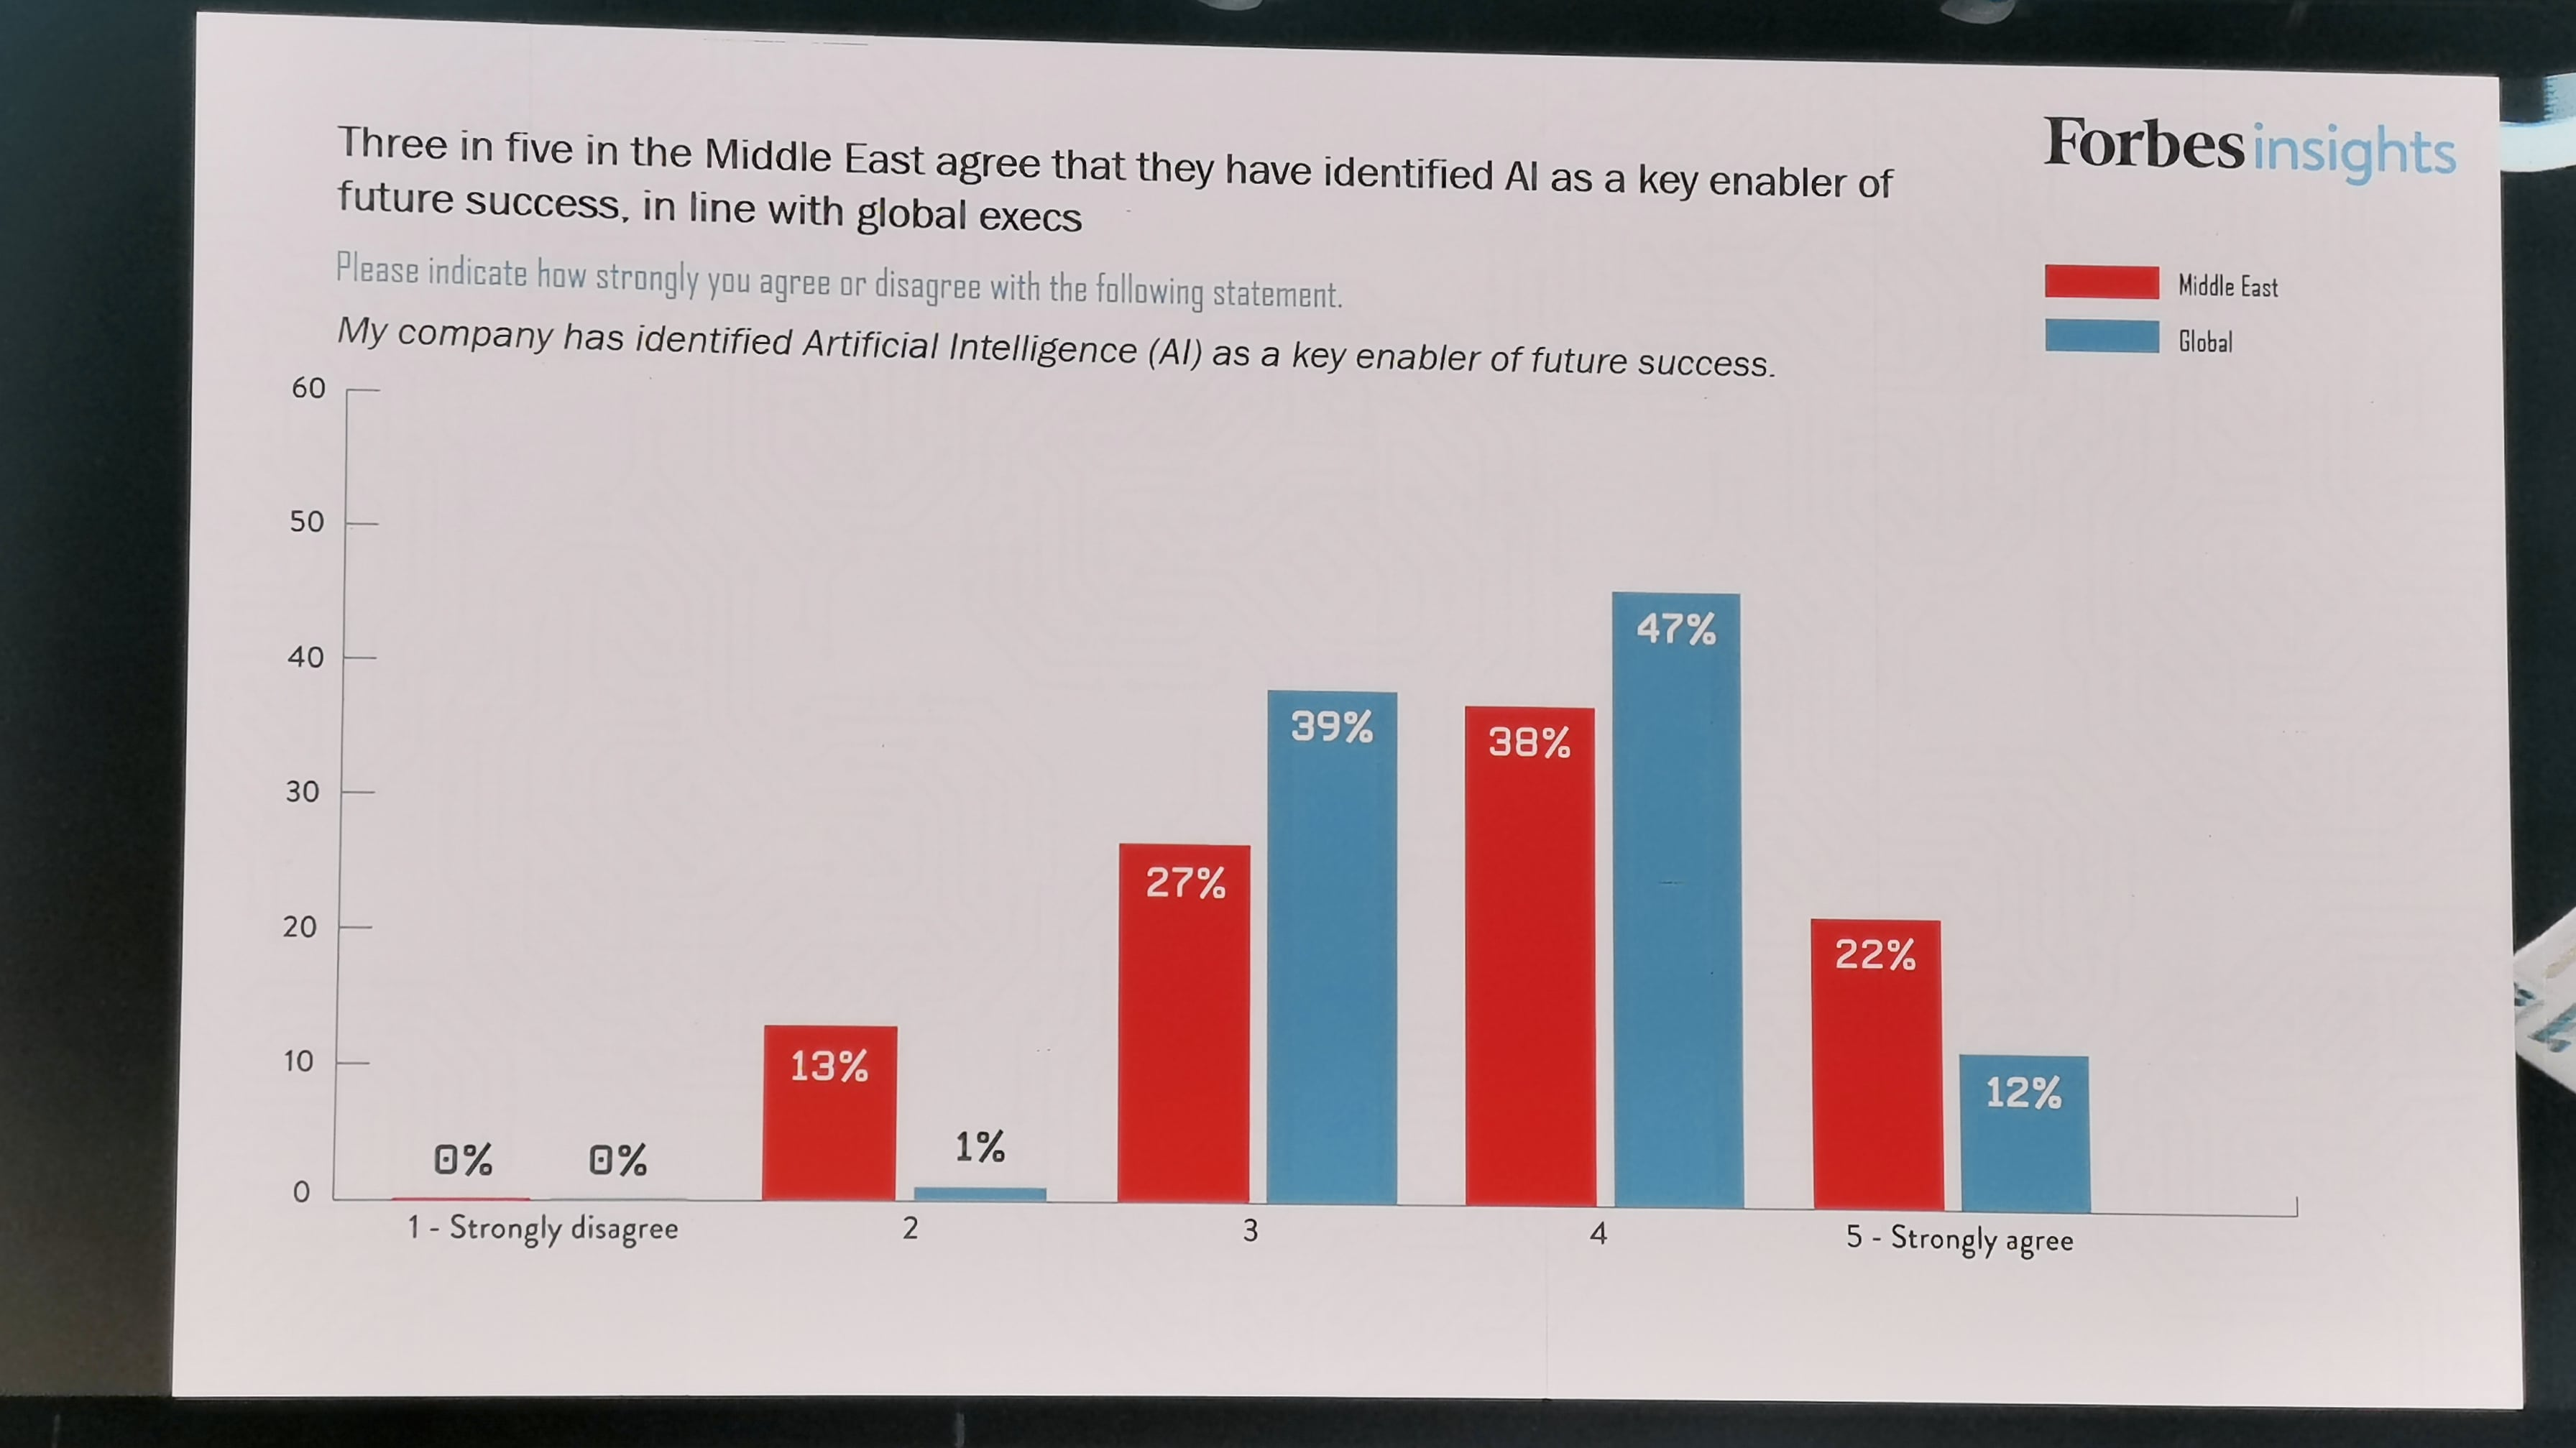 Report revealed at Ai Everything Summit in Dubai shows Middle East on pace with global counterparts